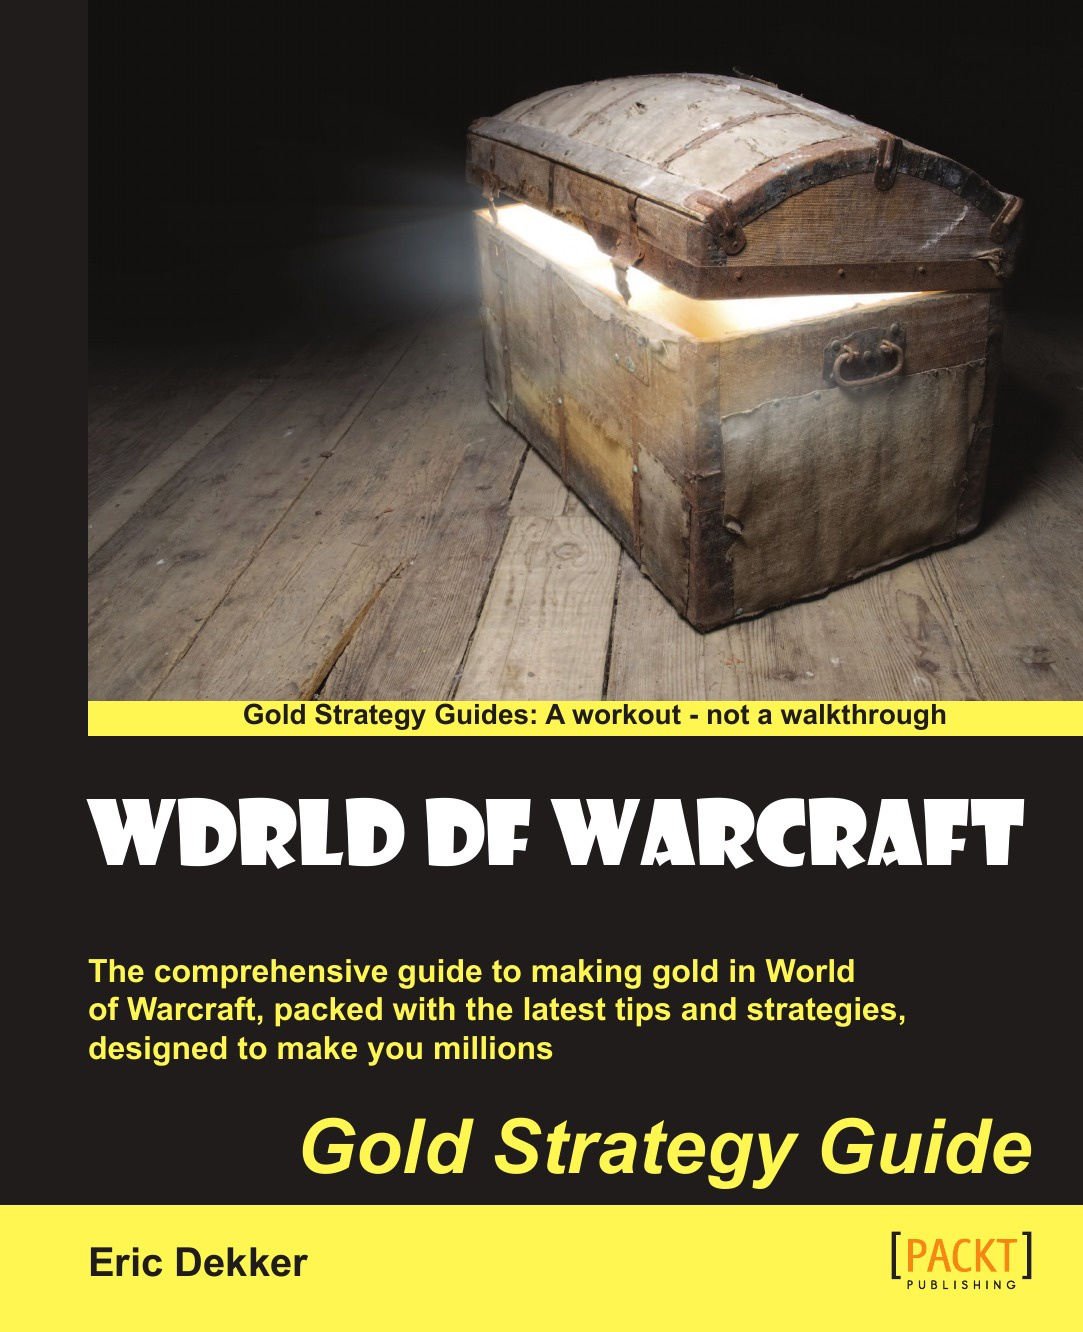 Eric Dekker World of Warcraft Gold Strategy Guide joseph joyner world of warcraft guide the ultimate wow game strategy and tactics guide